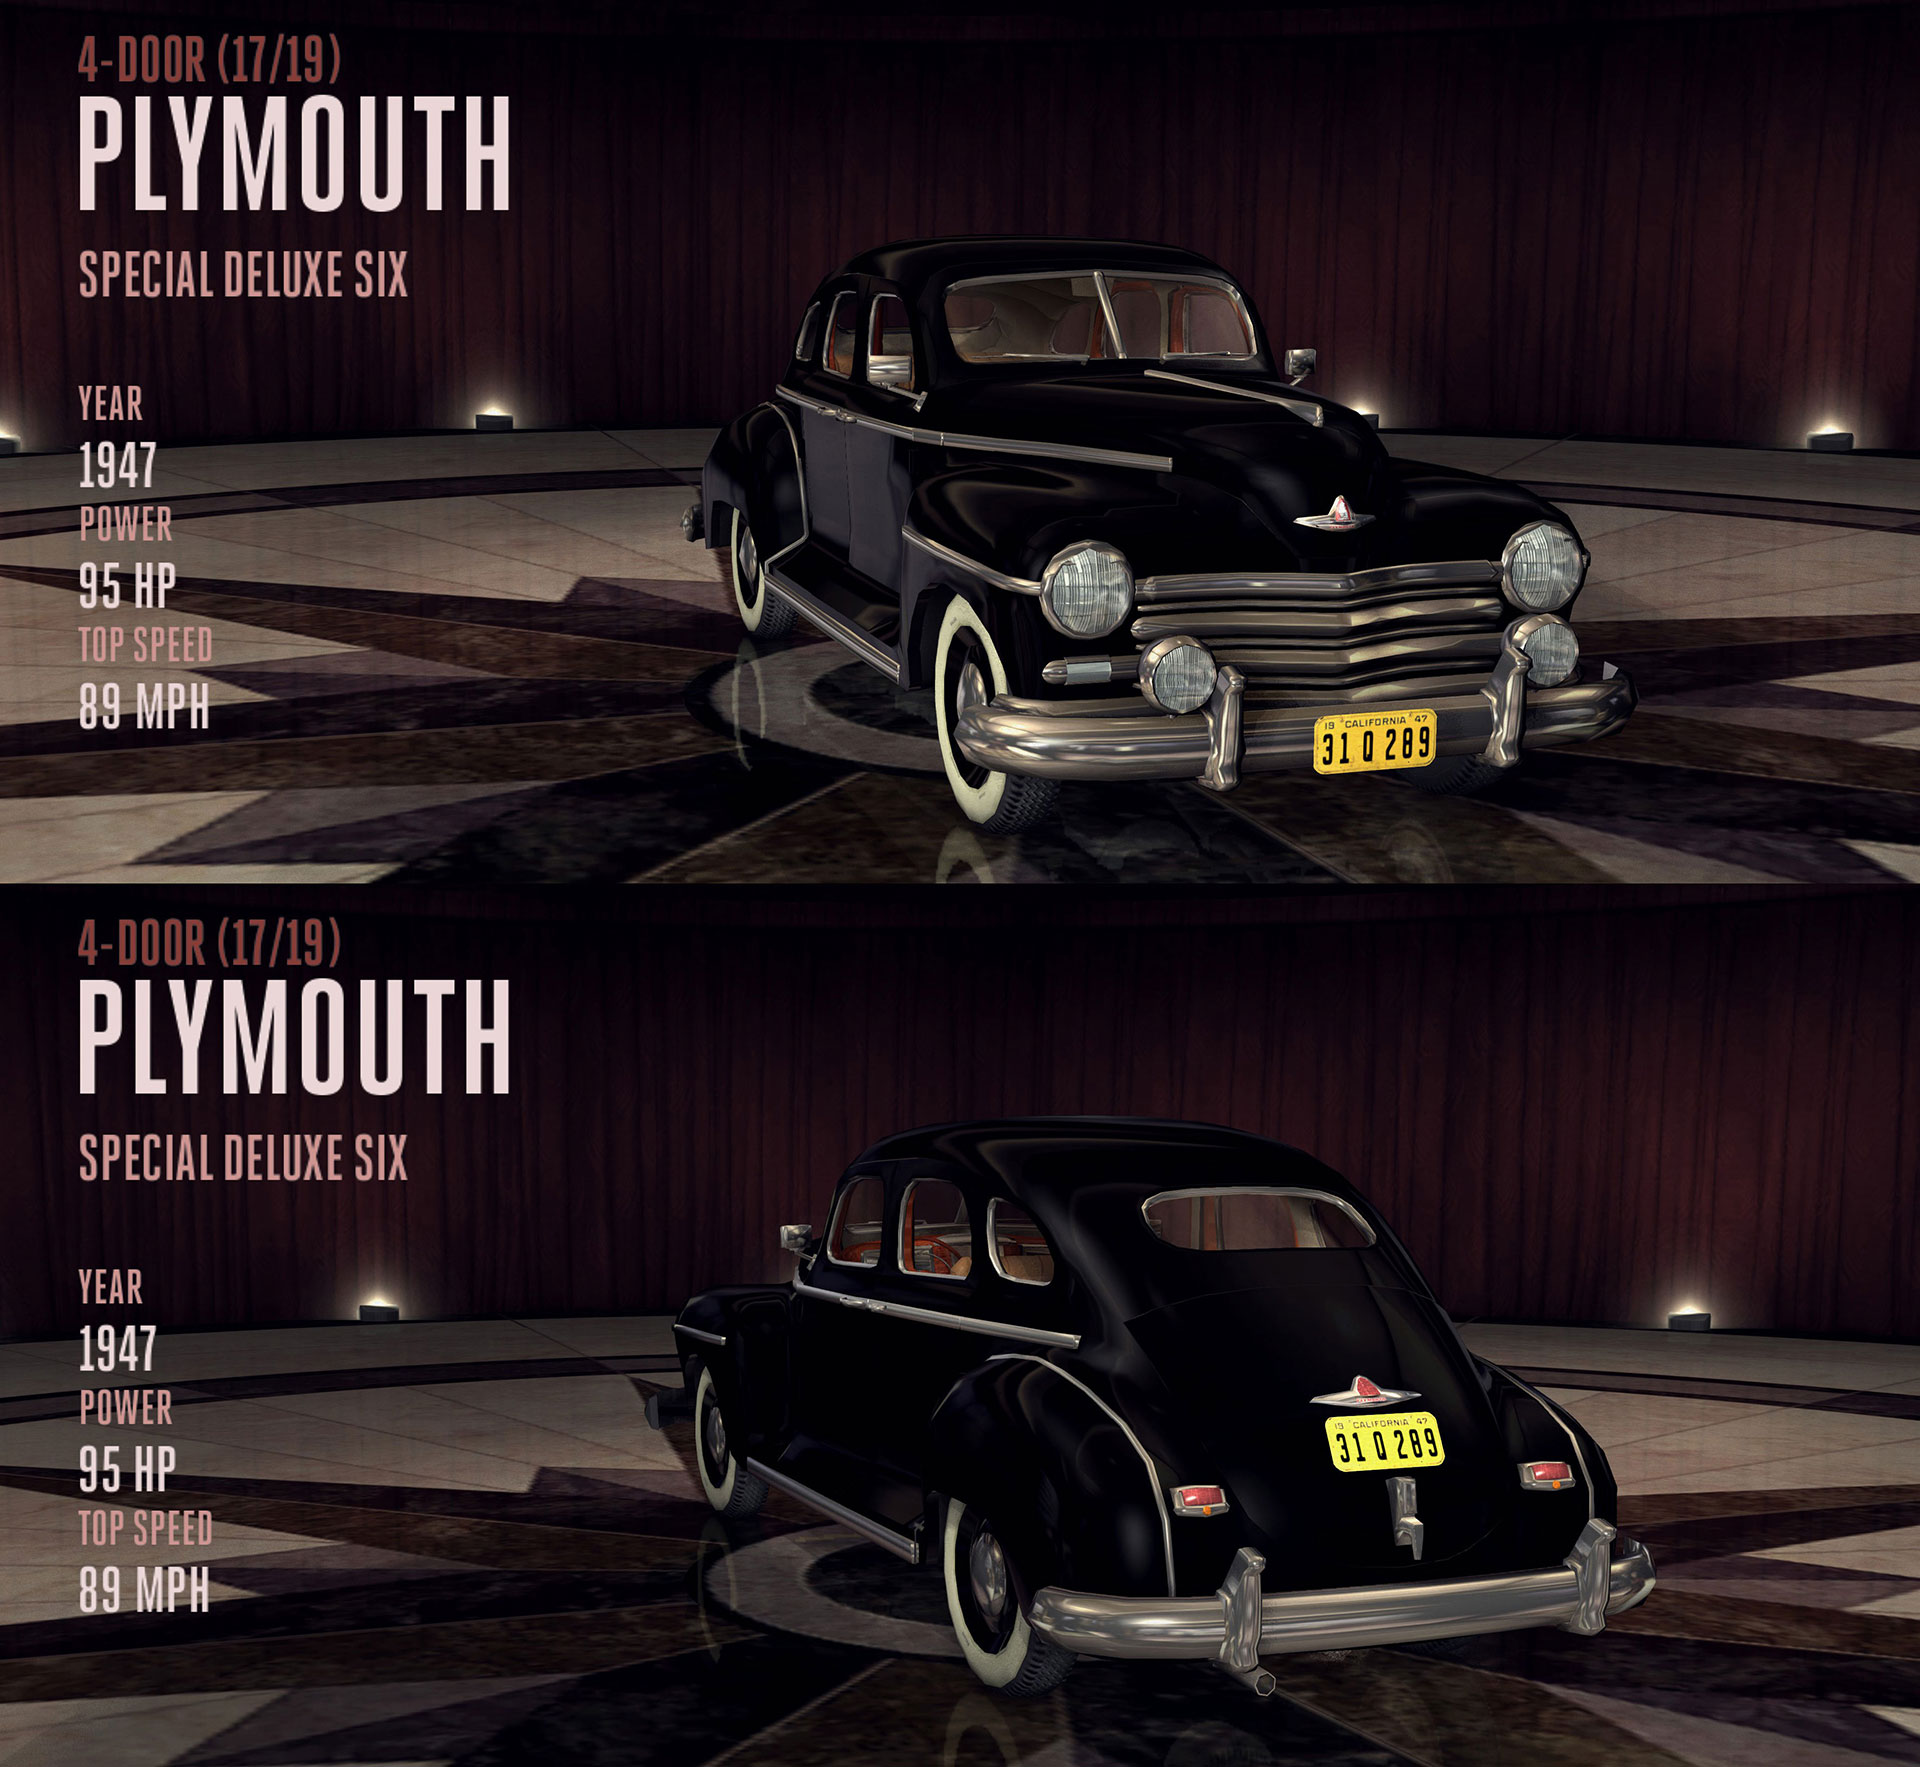 17. Plymouth Special Deluxe Six - Wilshire